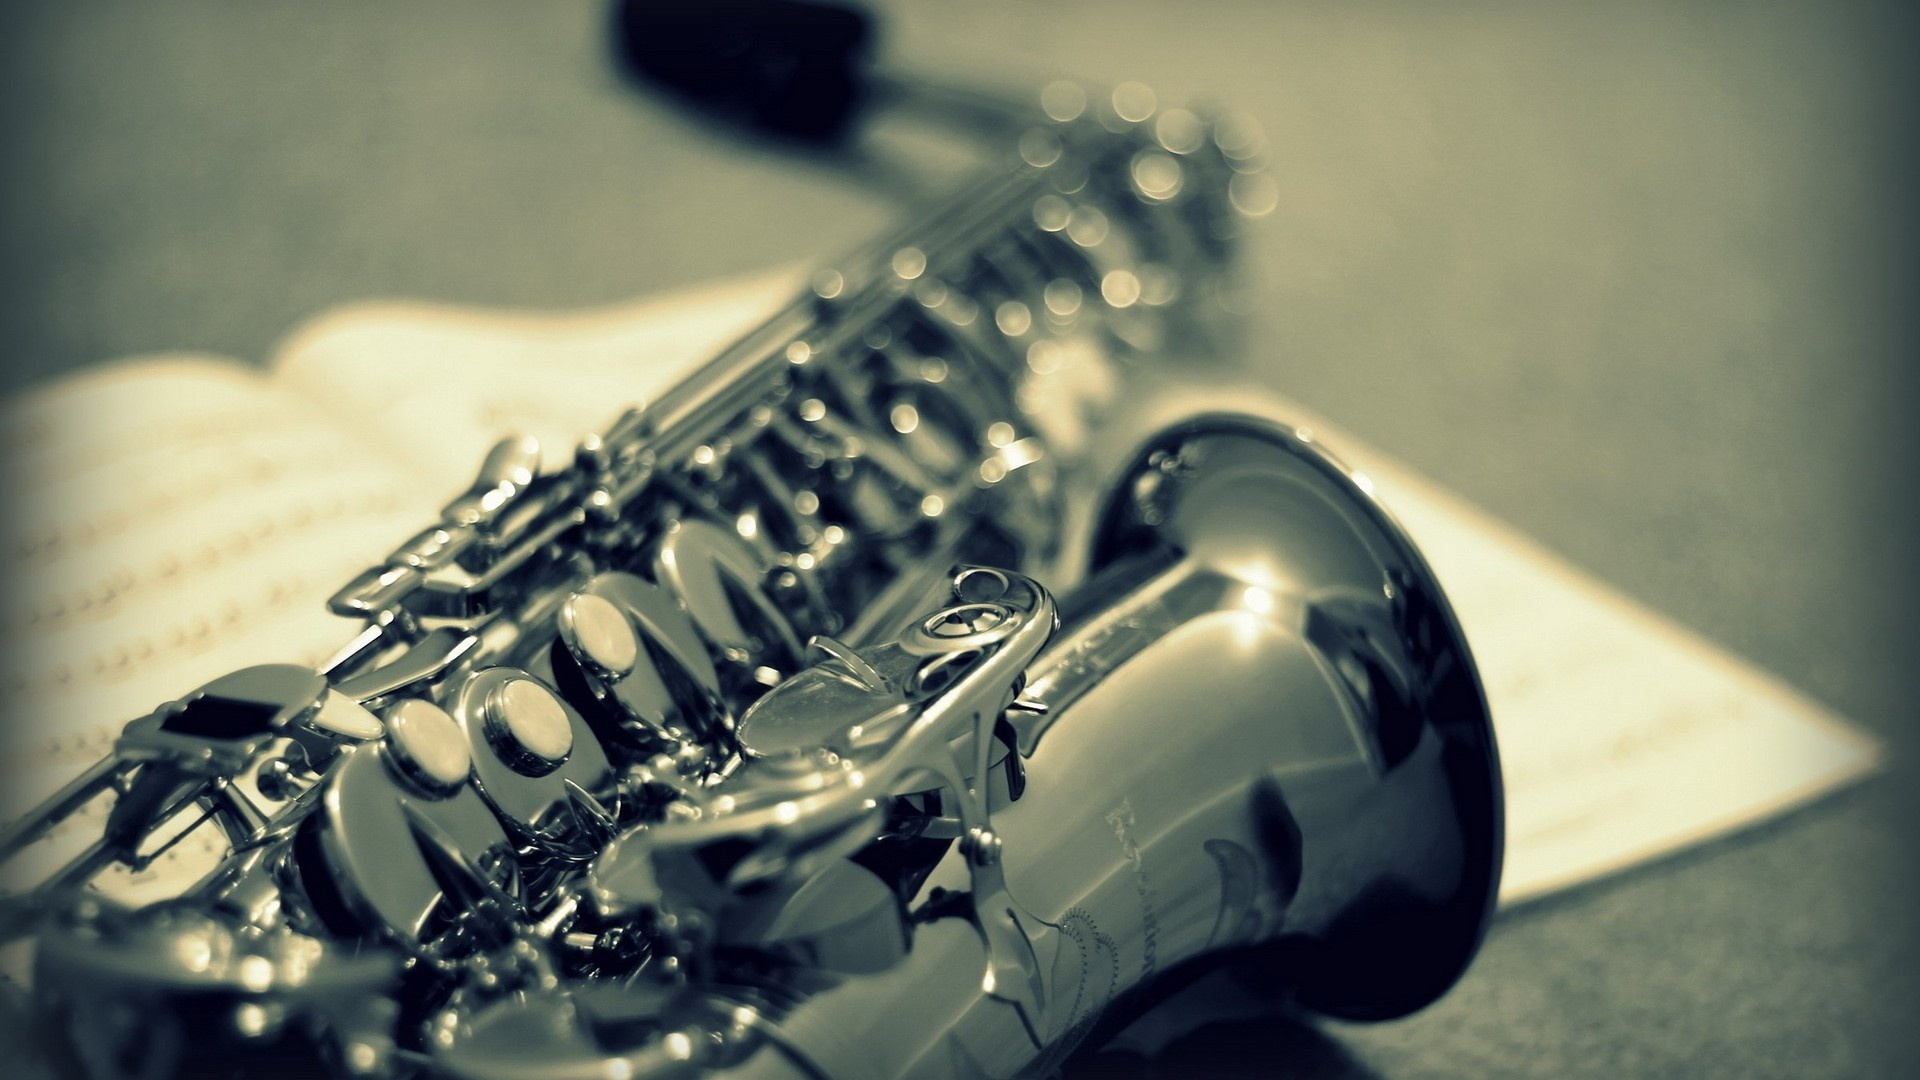 Saxophone Music Instrument Wallpapers 1920x1080 406907